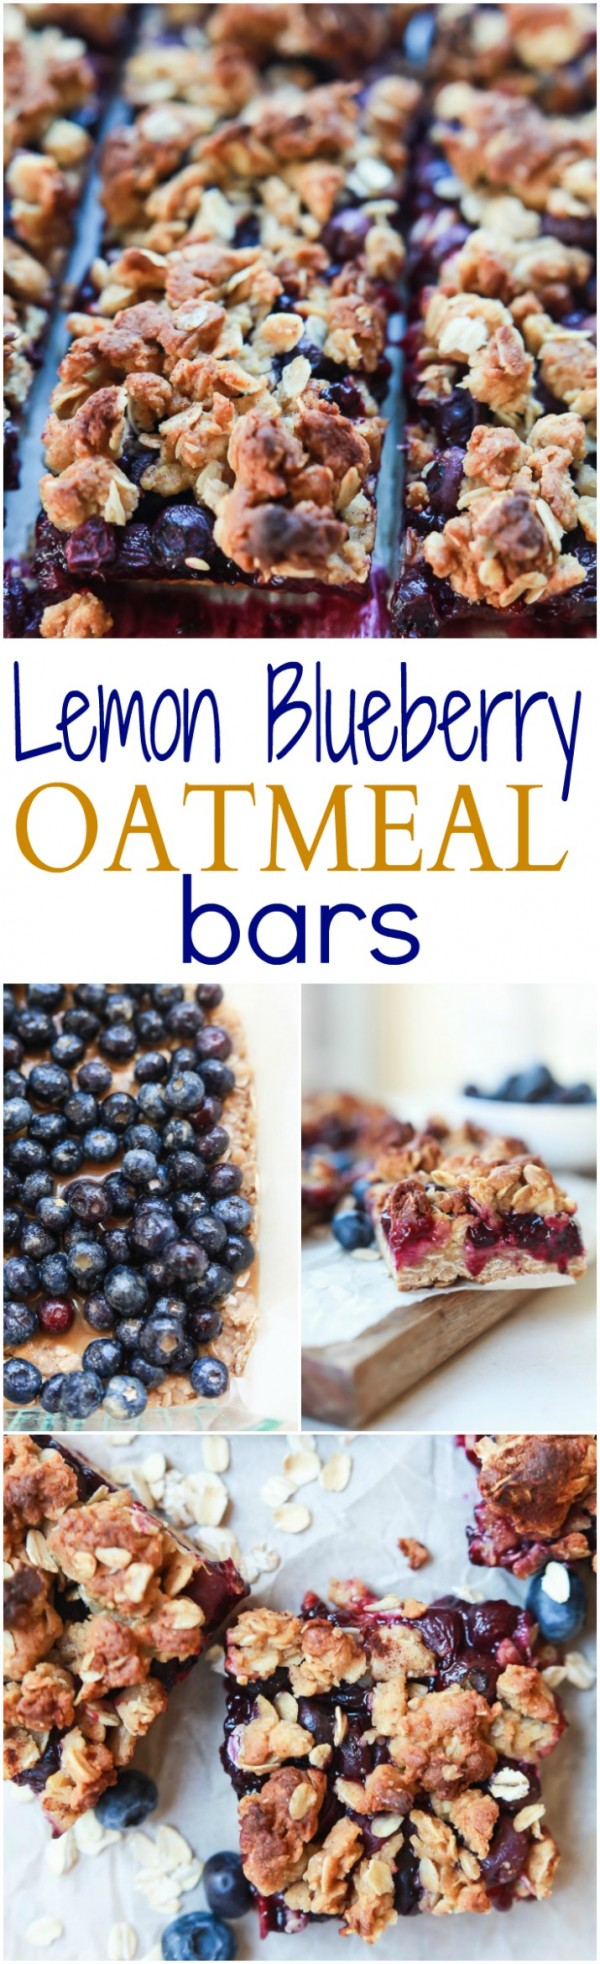 Get the recipe Lemon Blueberry Oatmeal Bars @recipes_to_go